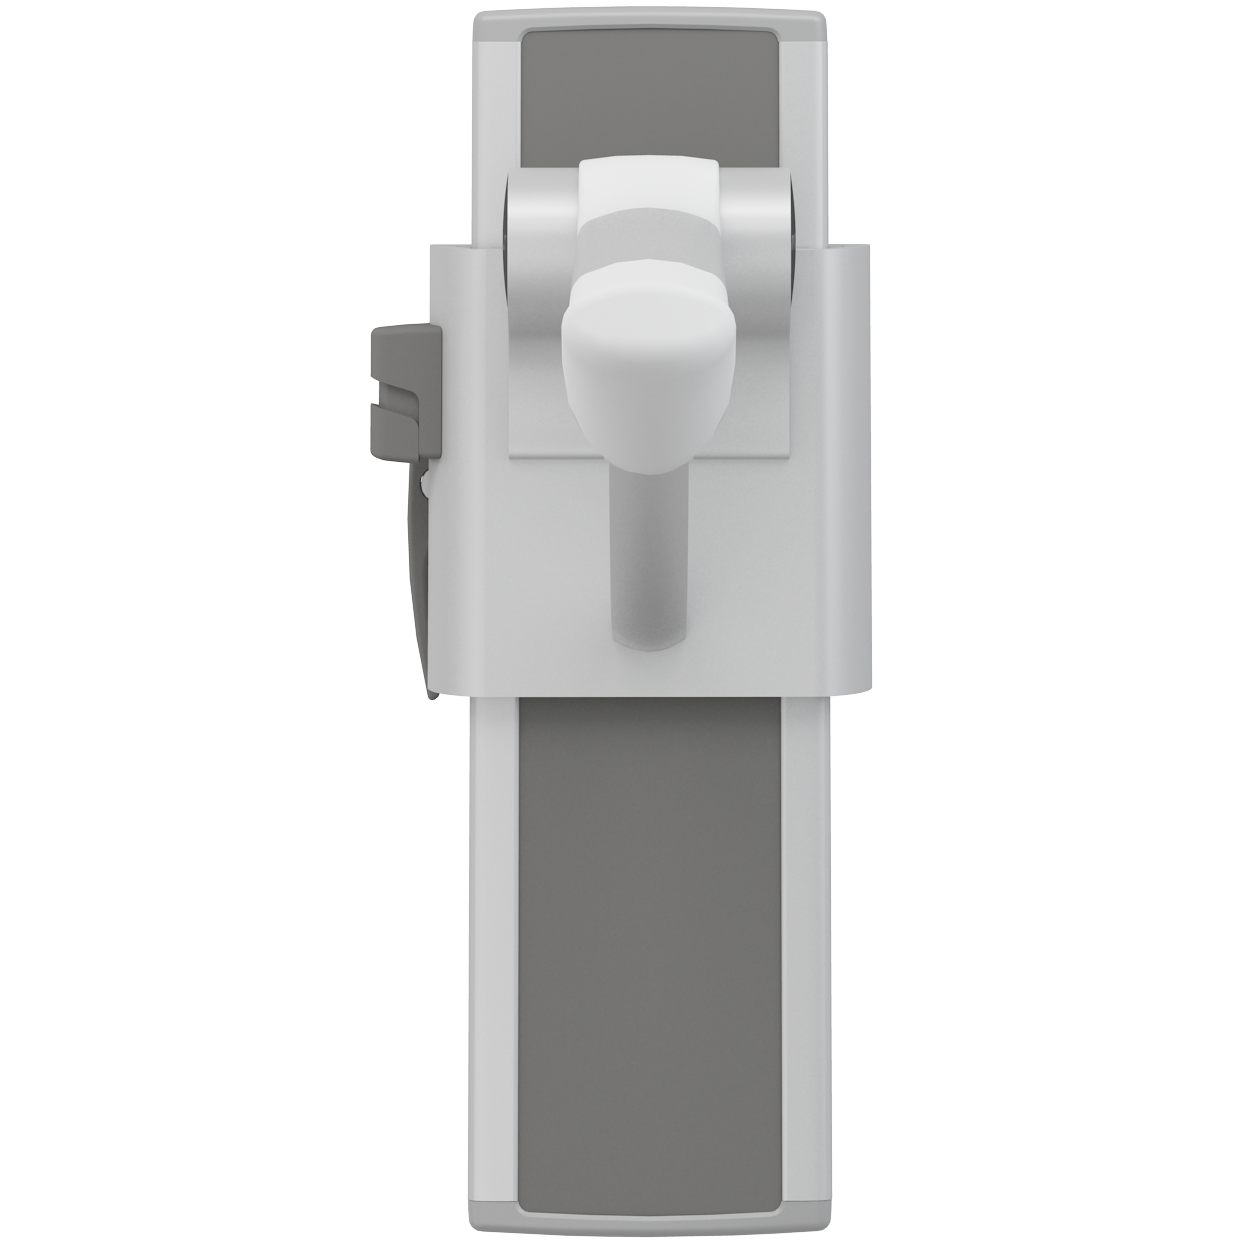 PLUS support arm, 850 mm, left hand operated